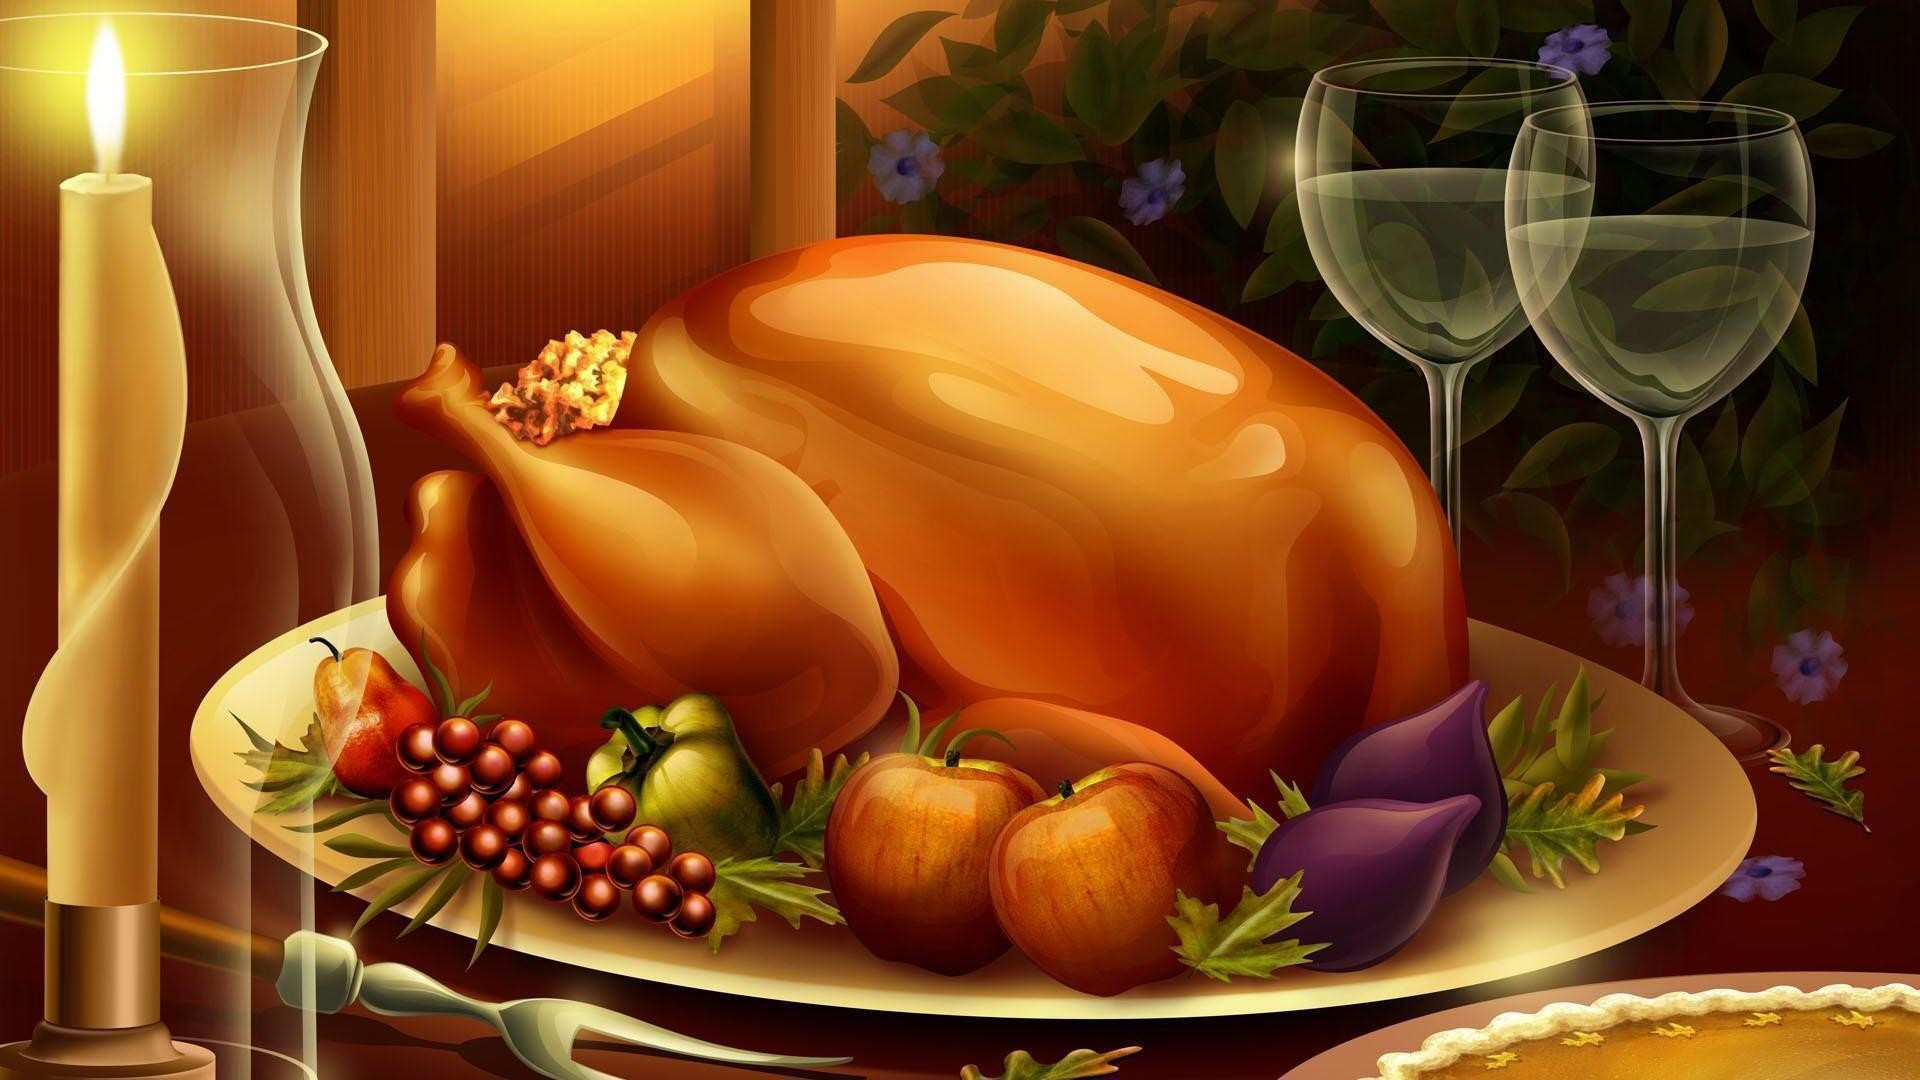 1920x1080 HD 3d thanksgiving foods Wallpaper Free